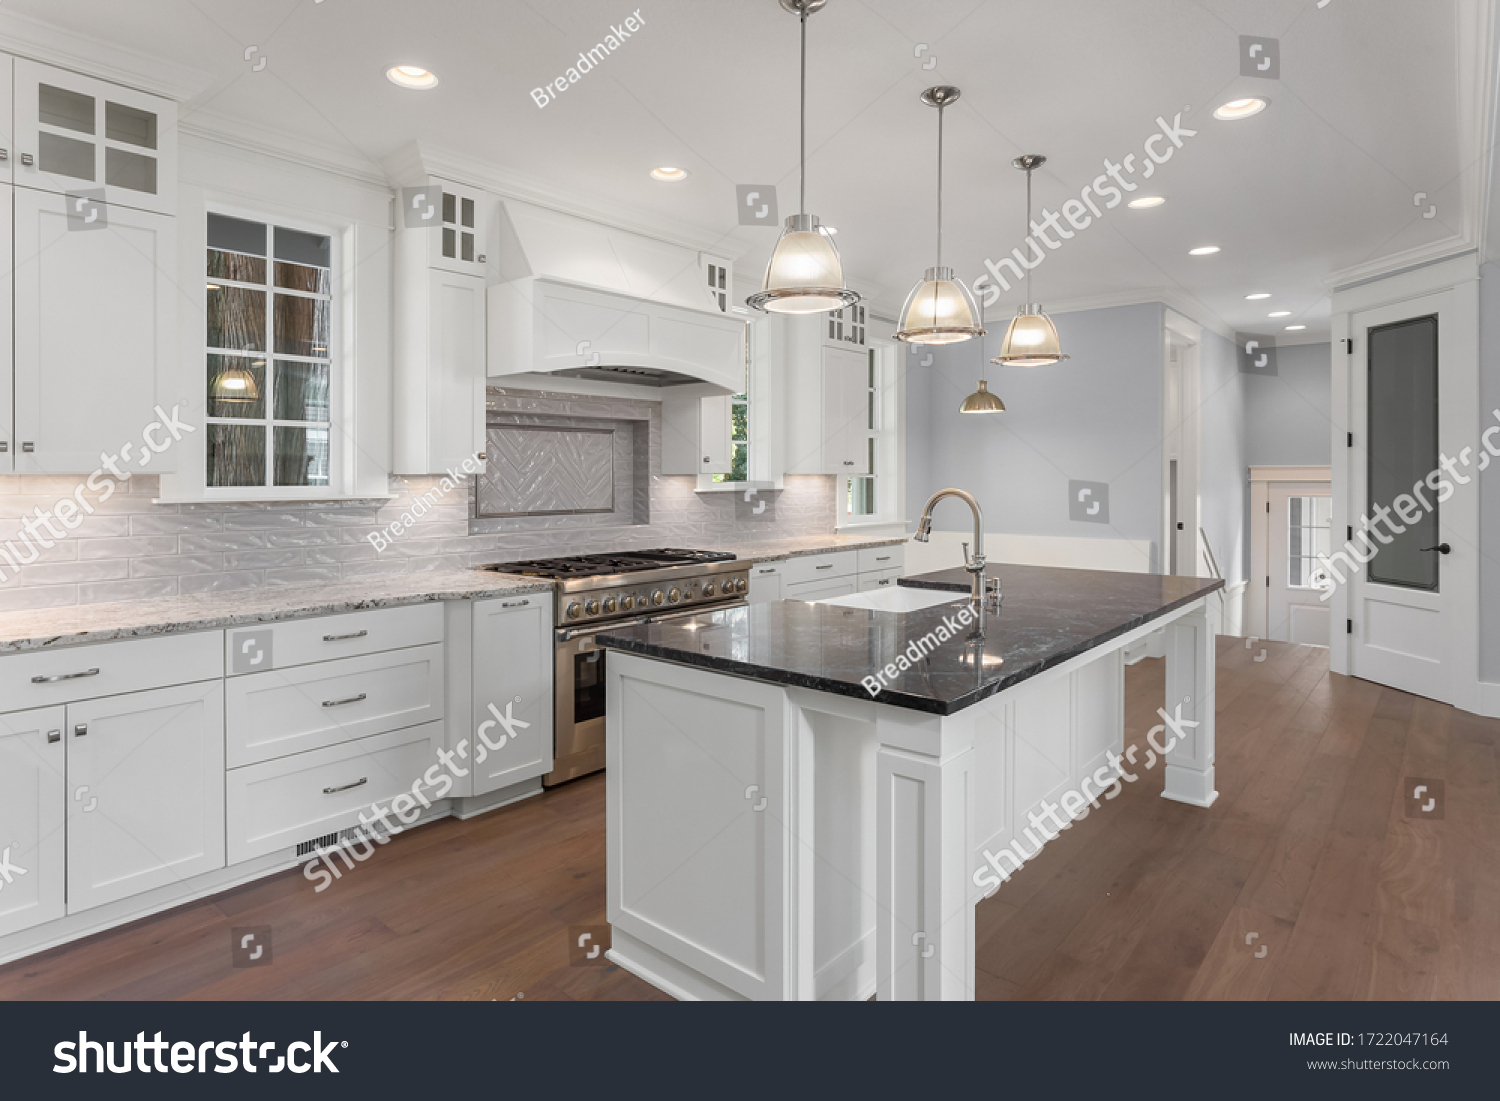 Beautiful kitchen in new luxury home with large island, hardwood floor, and pendant lights #1722047164